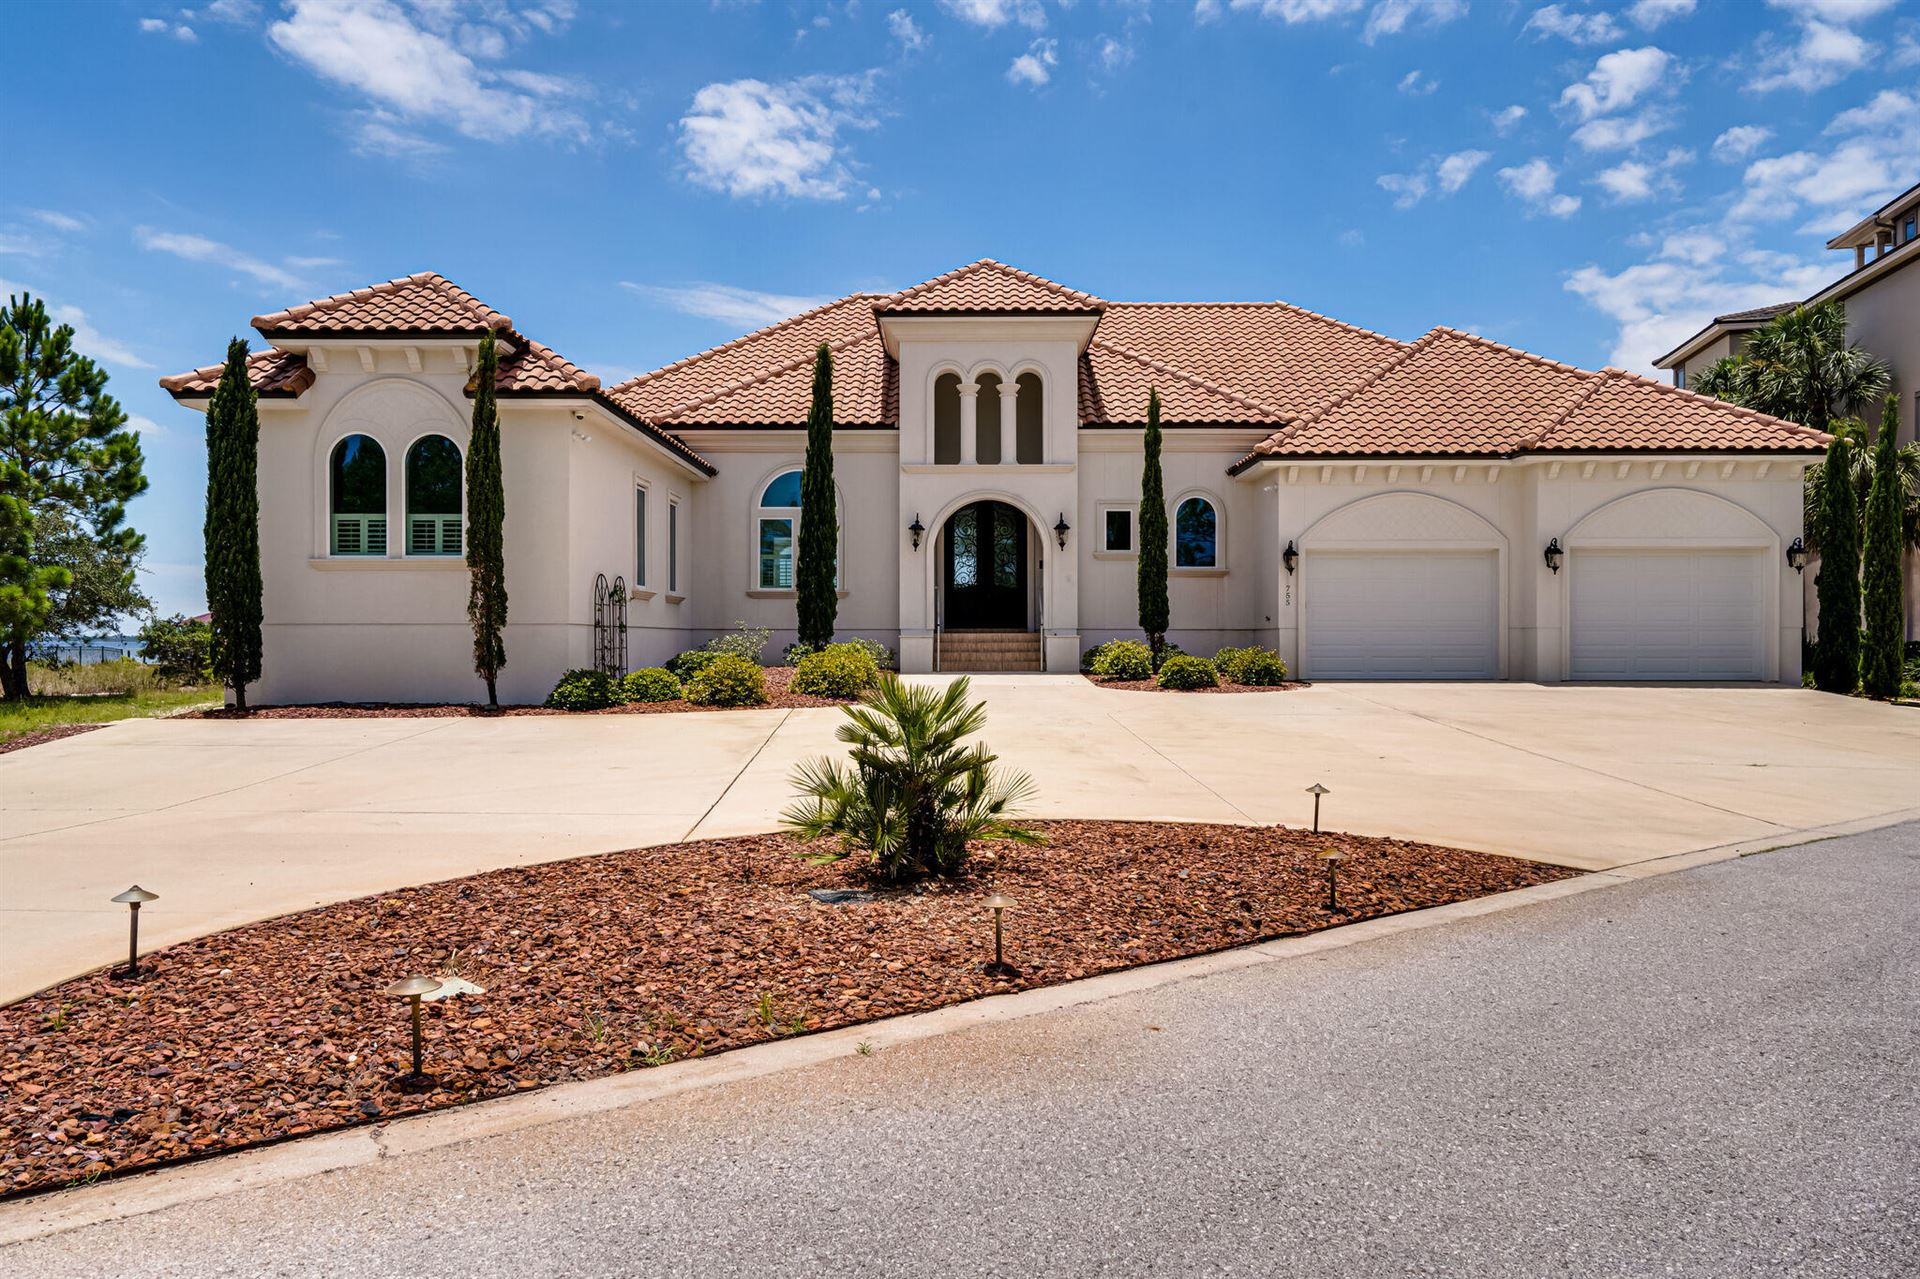 Property Image Of 755 Boulevard Of The Champions In Shalimar, Fl